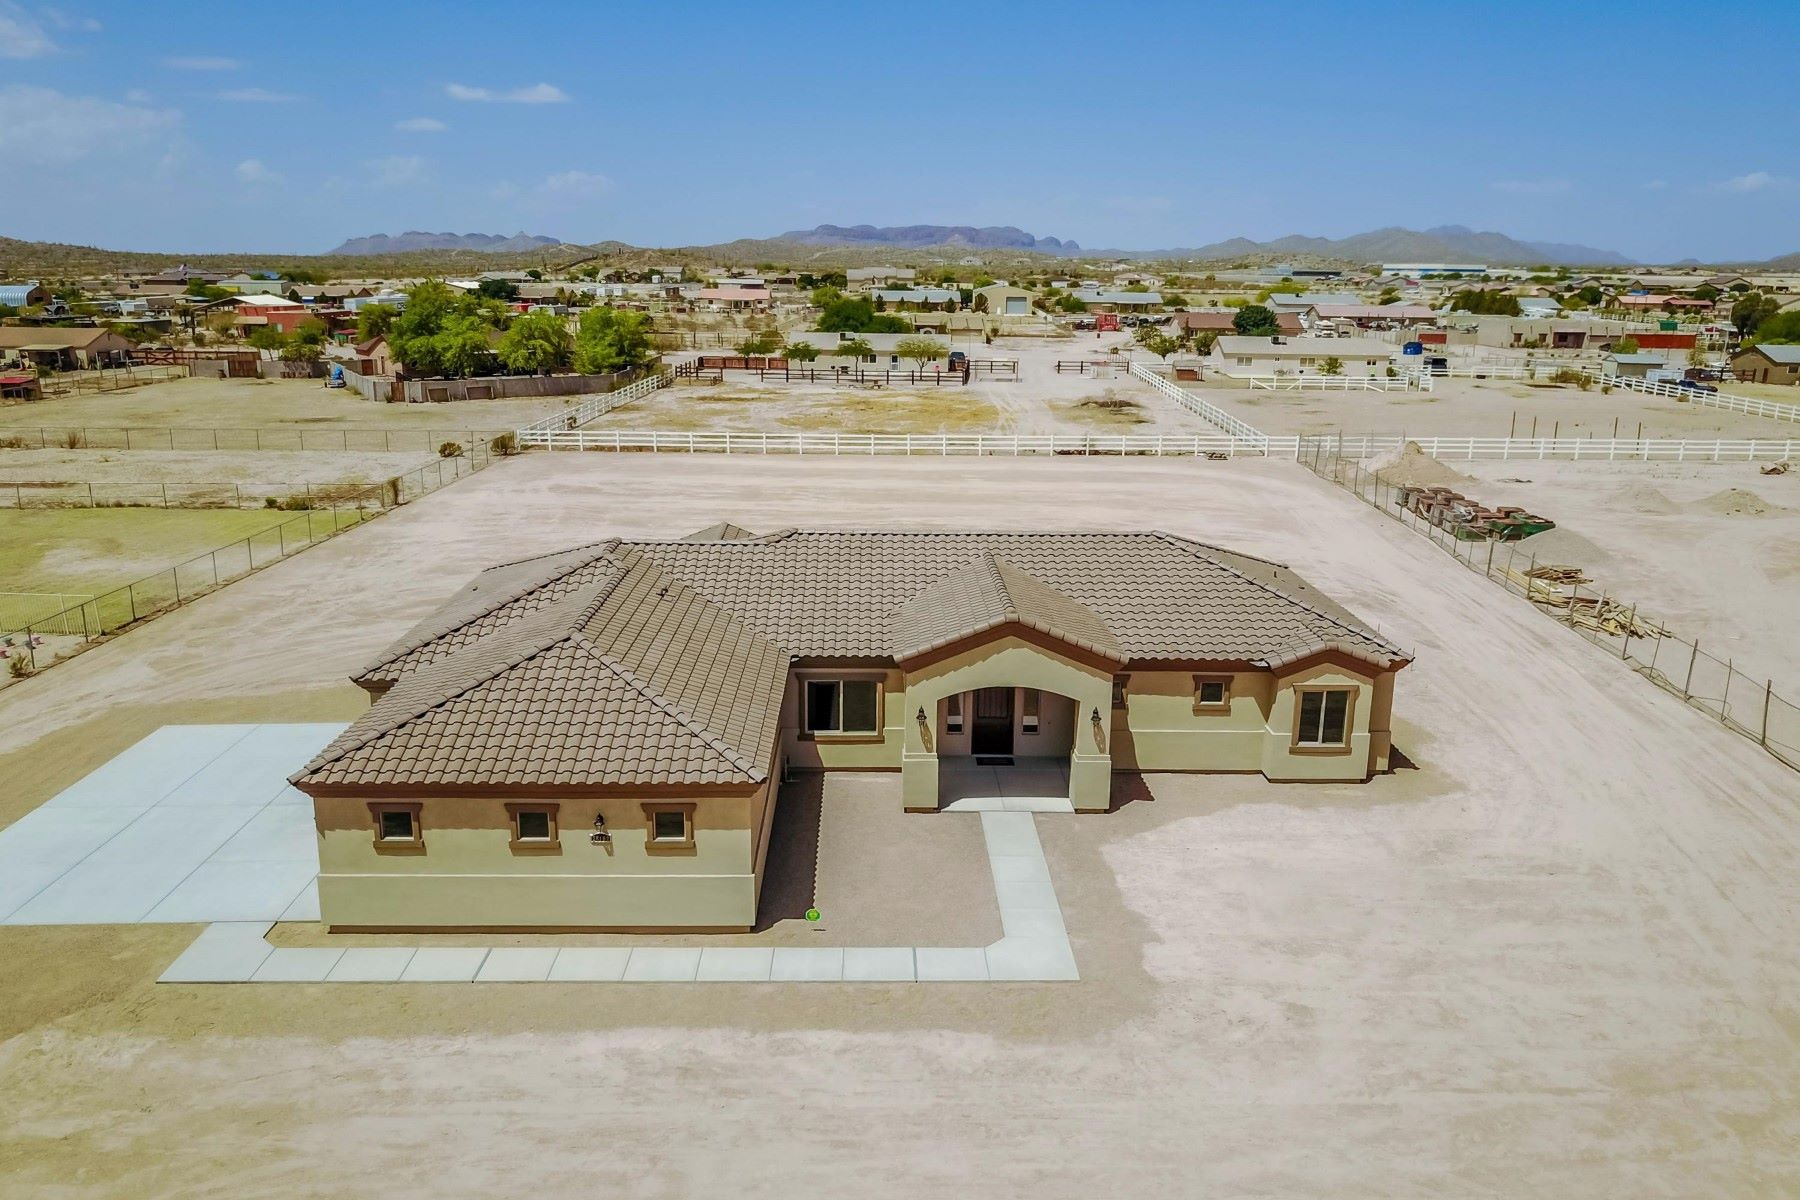 Casa Unifamiliar por un Venta en Meticulously crafted well-built home 28102 N Edwards Rd San Tan Valley, Arizona, 85143 Estados Unidos